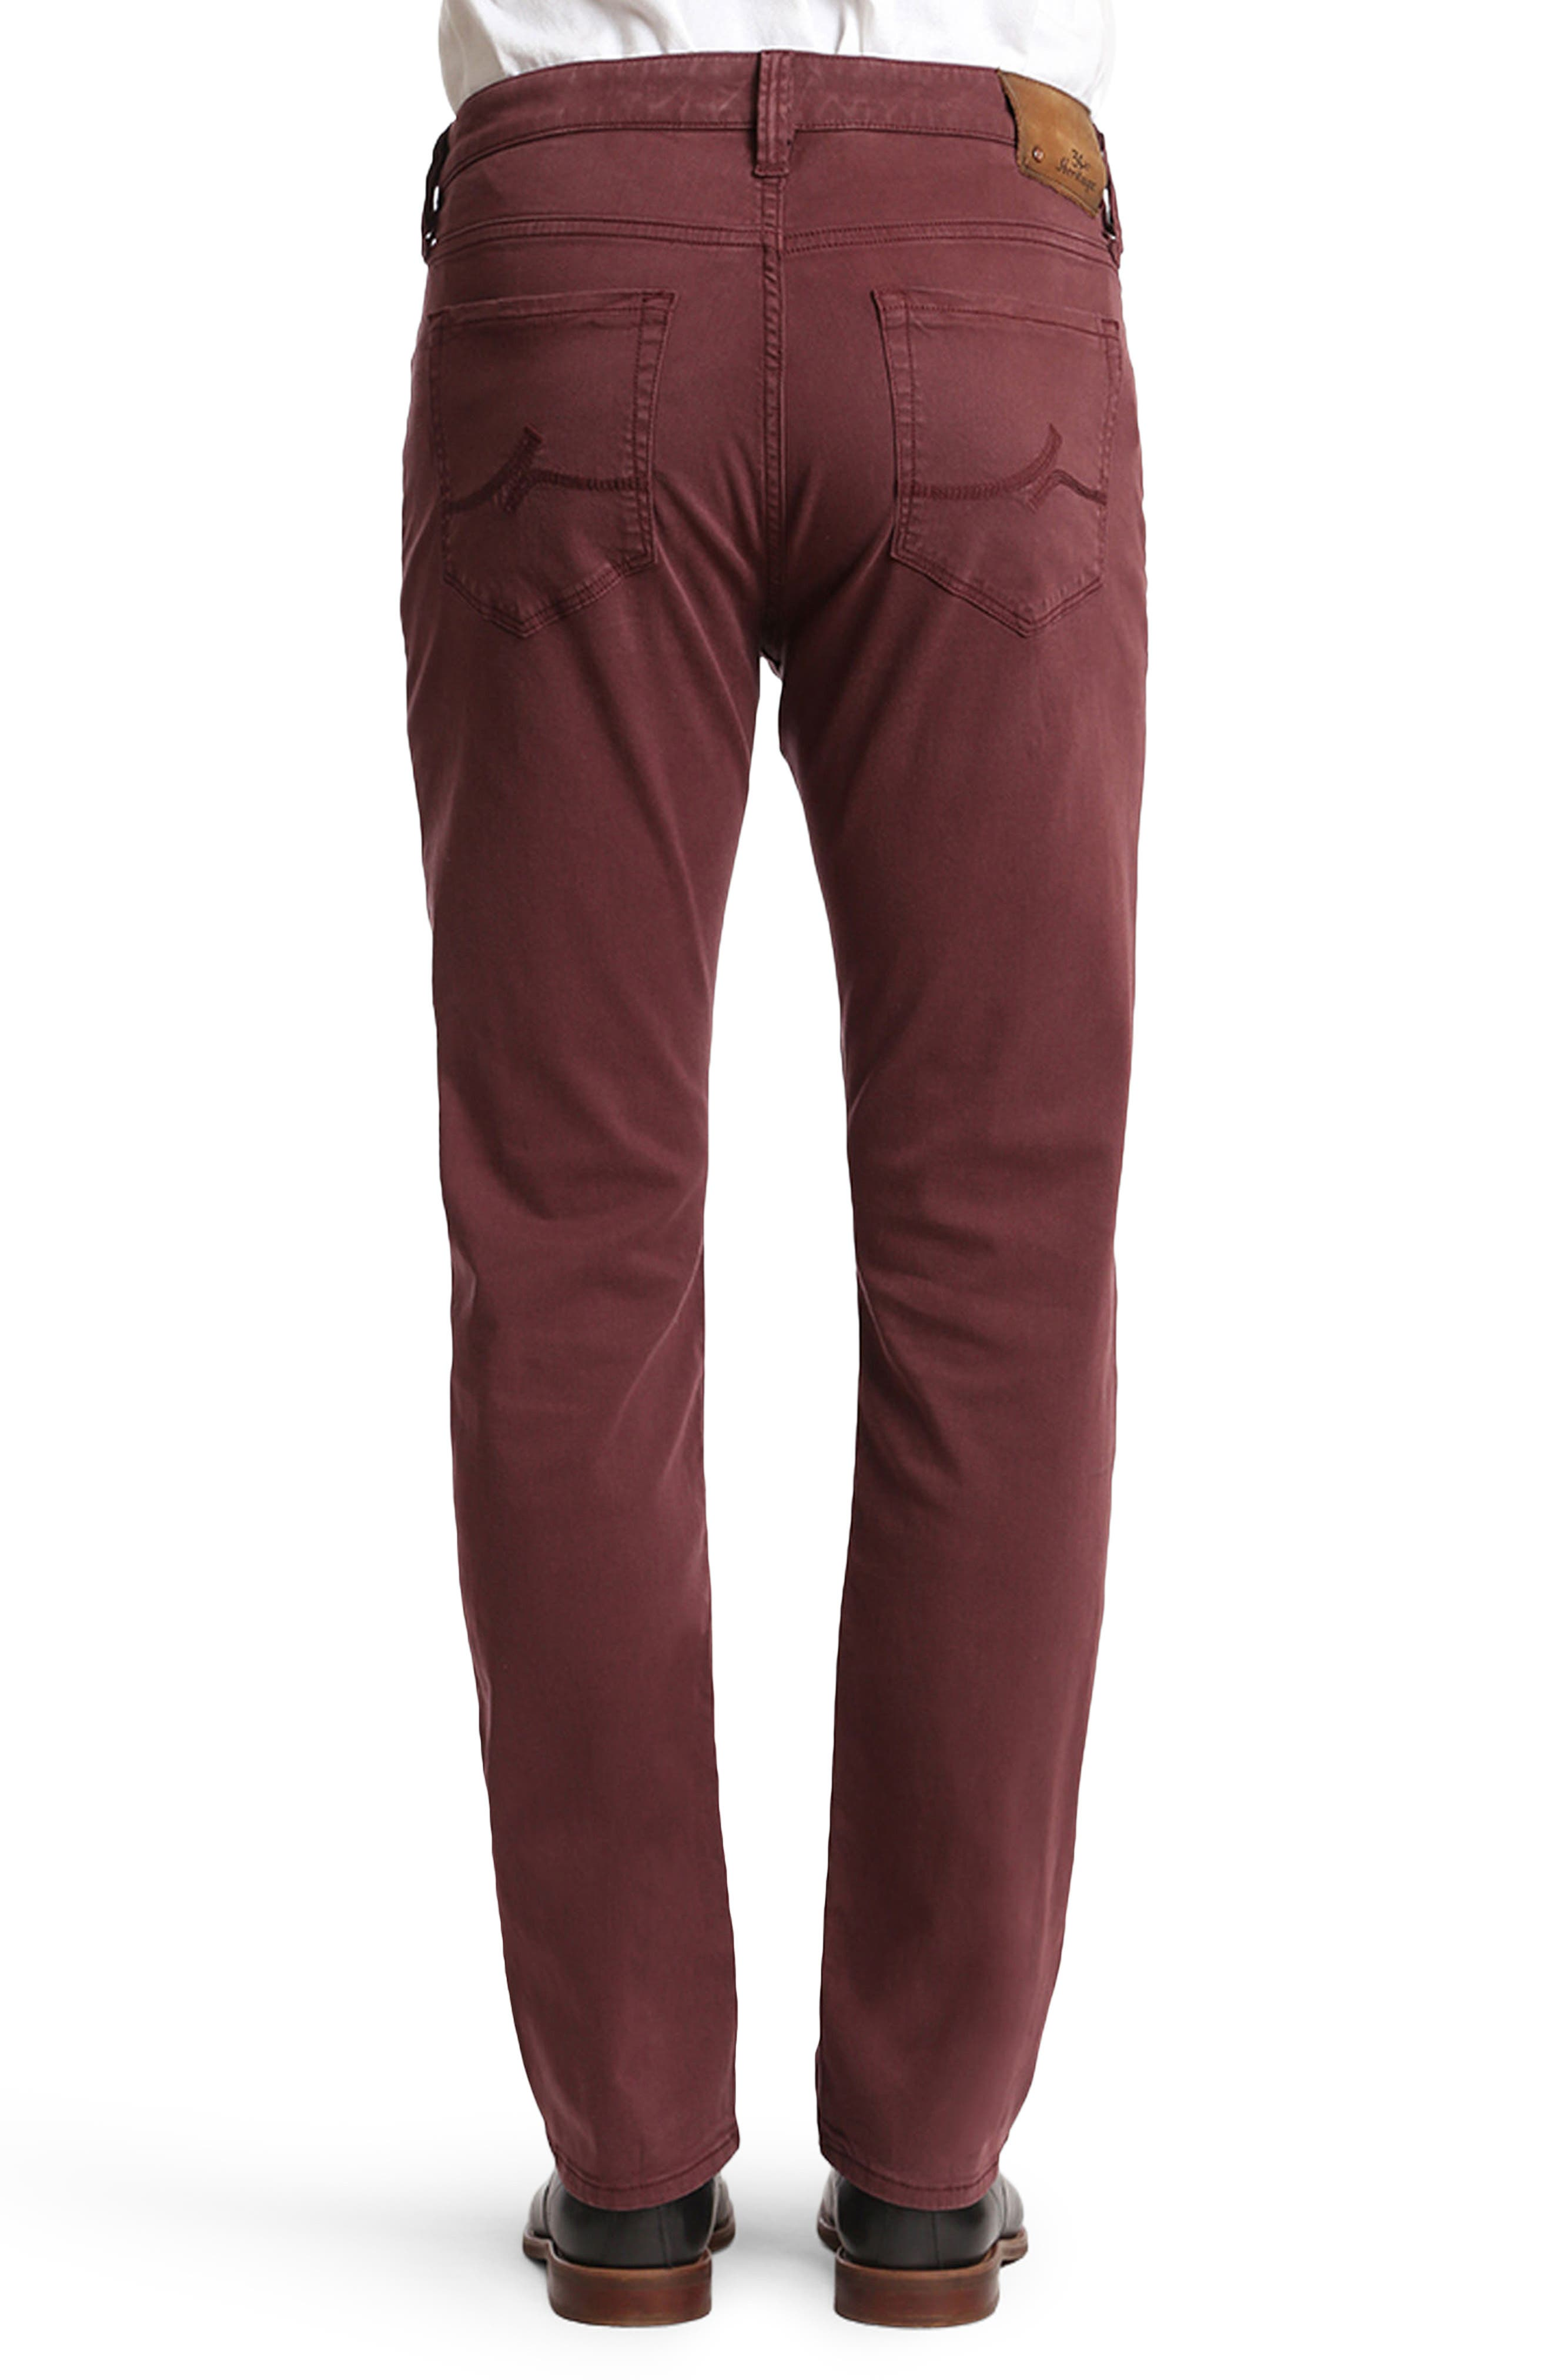 Courage Straight Leg Twill Pants,                             Alternate thumbnail 2, color,                             Bordeaux Twill